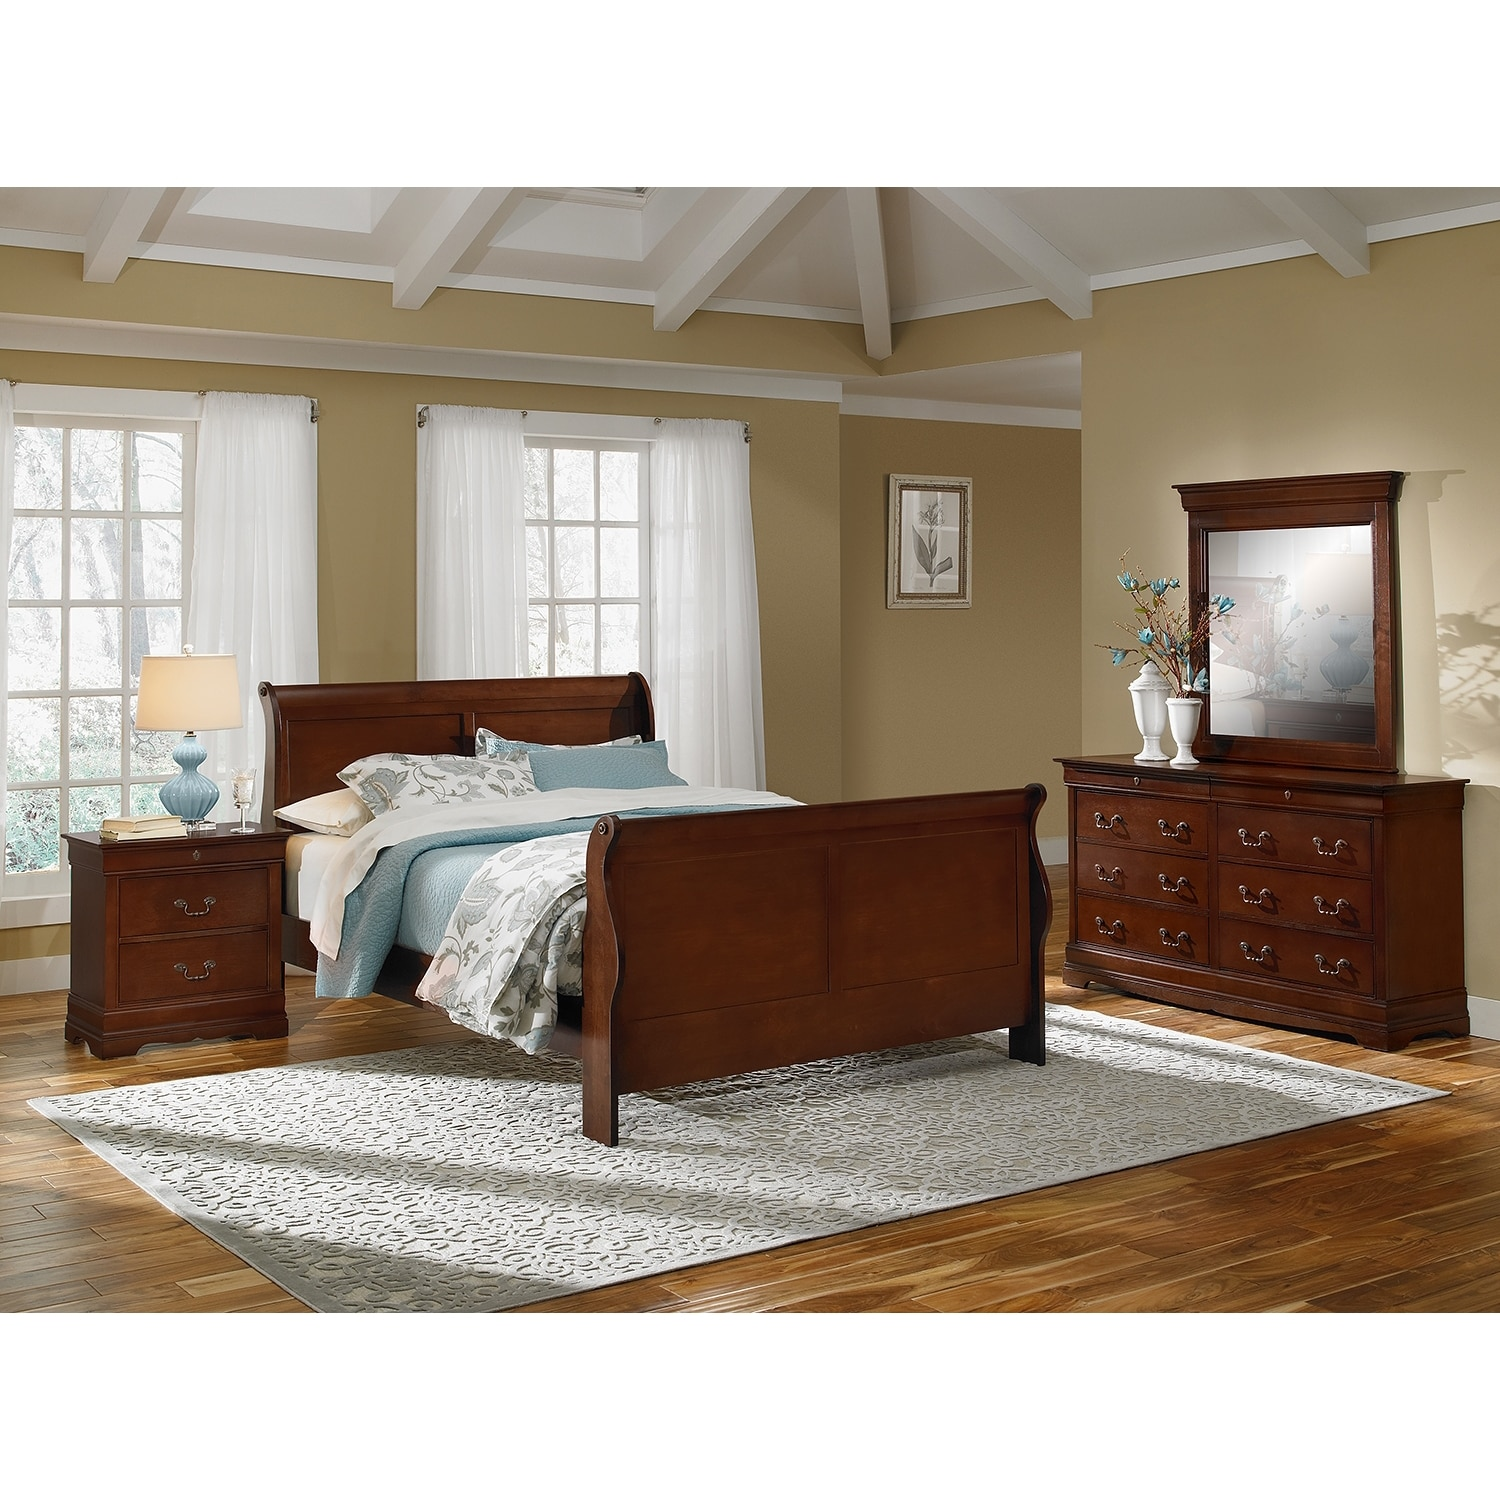 Neo Classic 6-Piece King Bedroom Set - Cherry